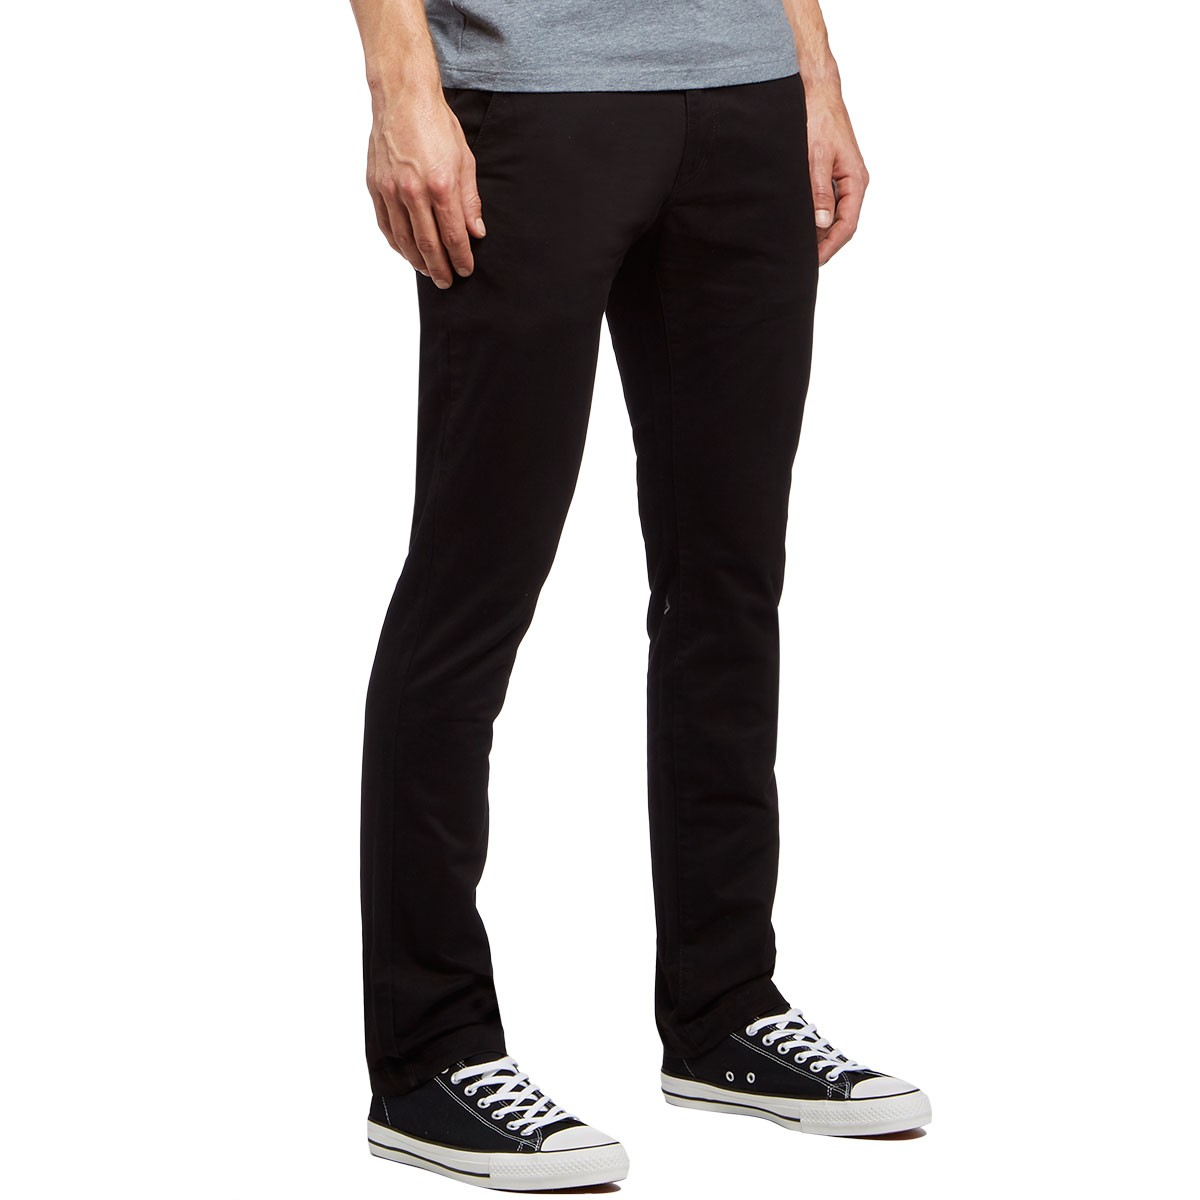 Whether you're looking for black slim jeans, white slim fit jeans, ripped jeans, embellished jeans, or something else, we've got you covered. With men's slim fit jeans available in light, medium, and dark washes, every guy .